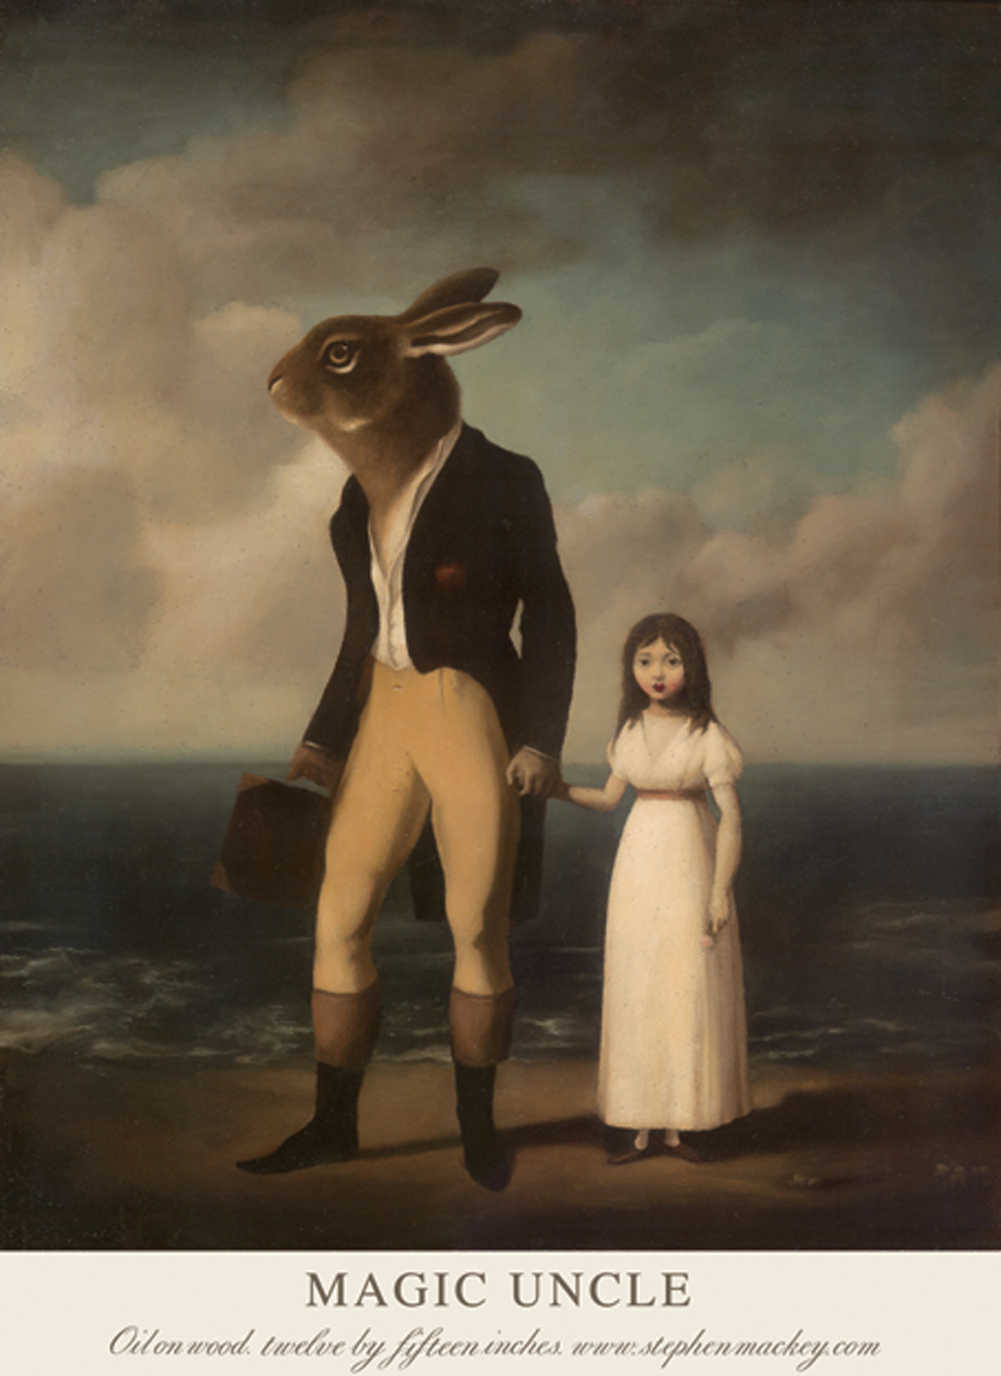 Stephen Mackey (17)